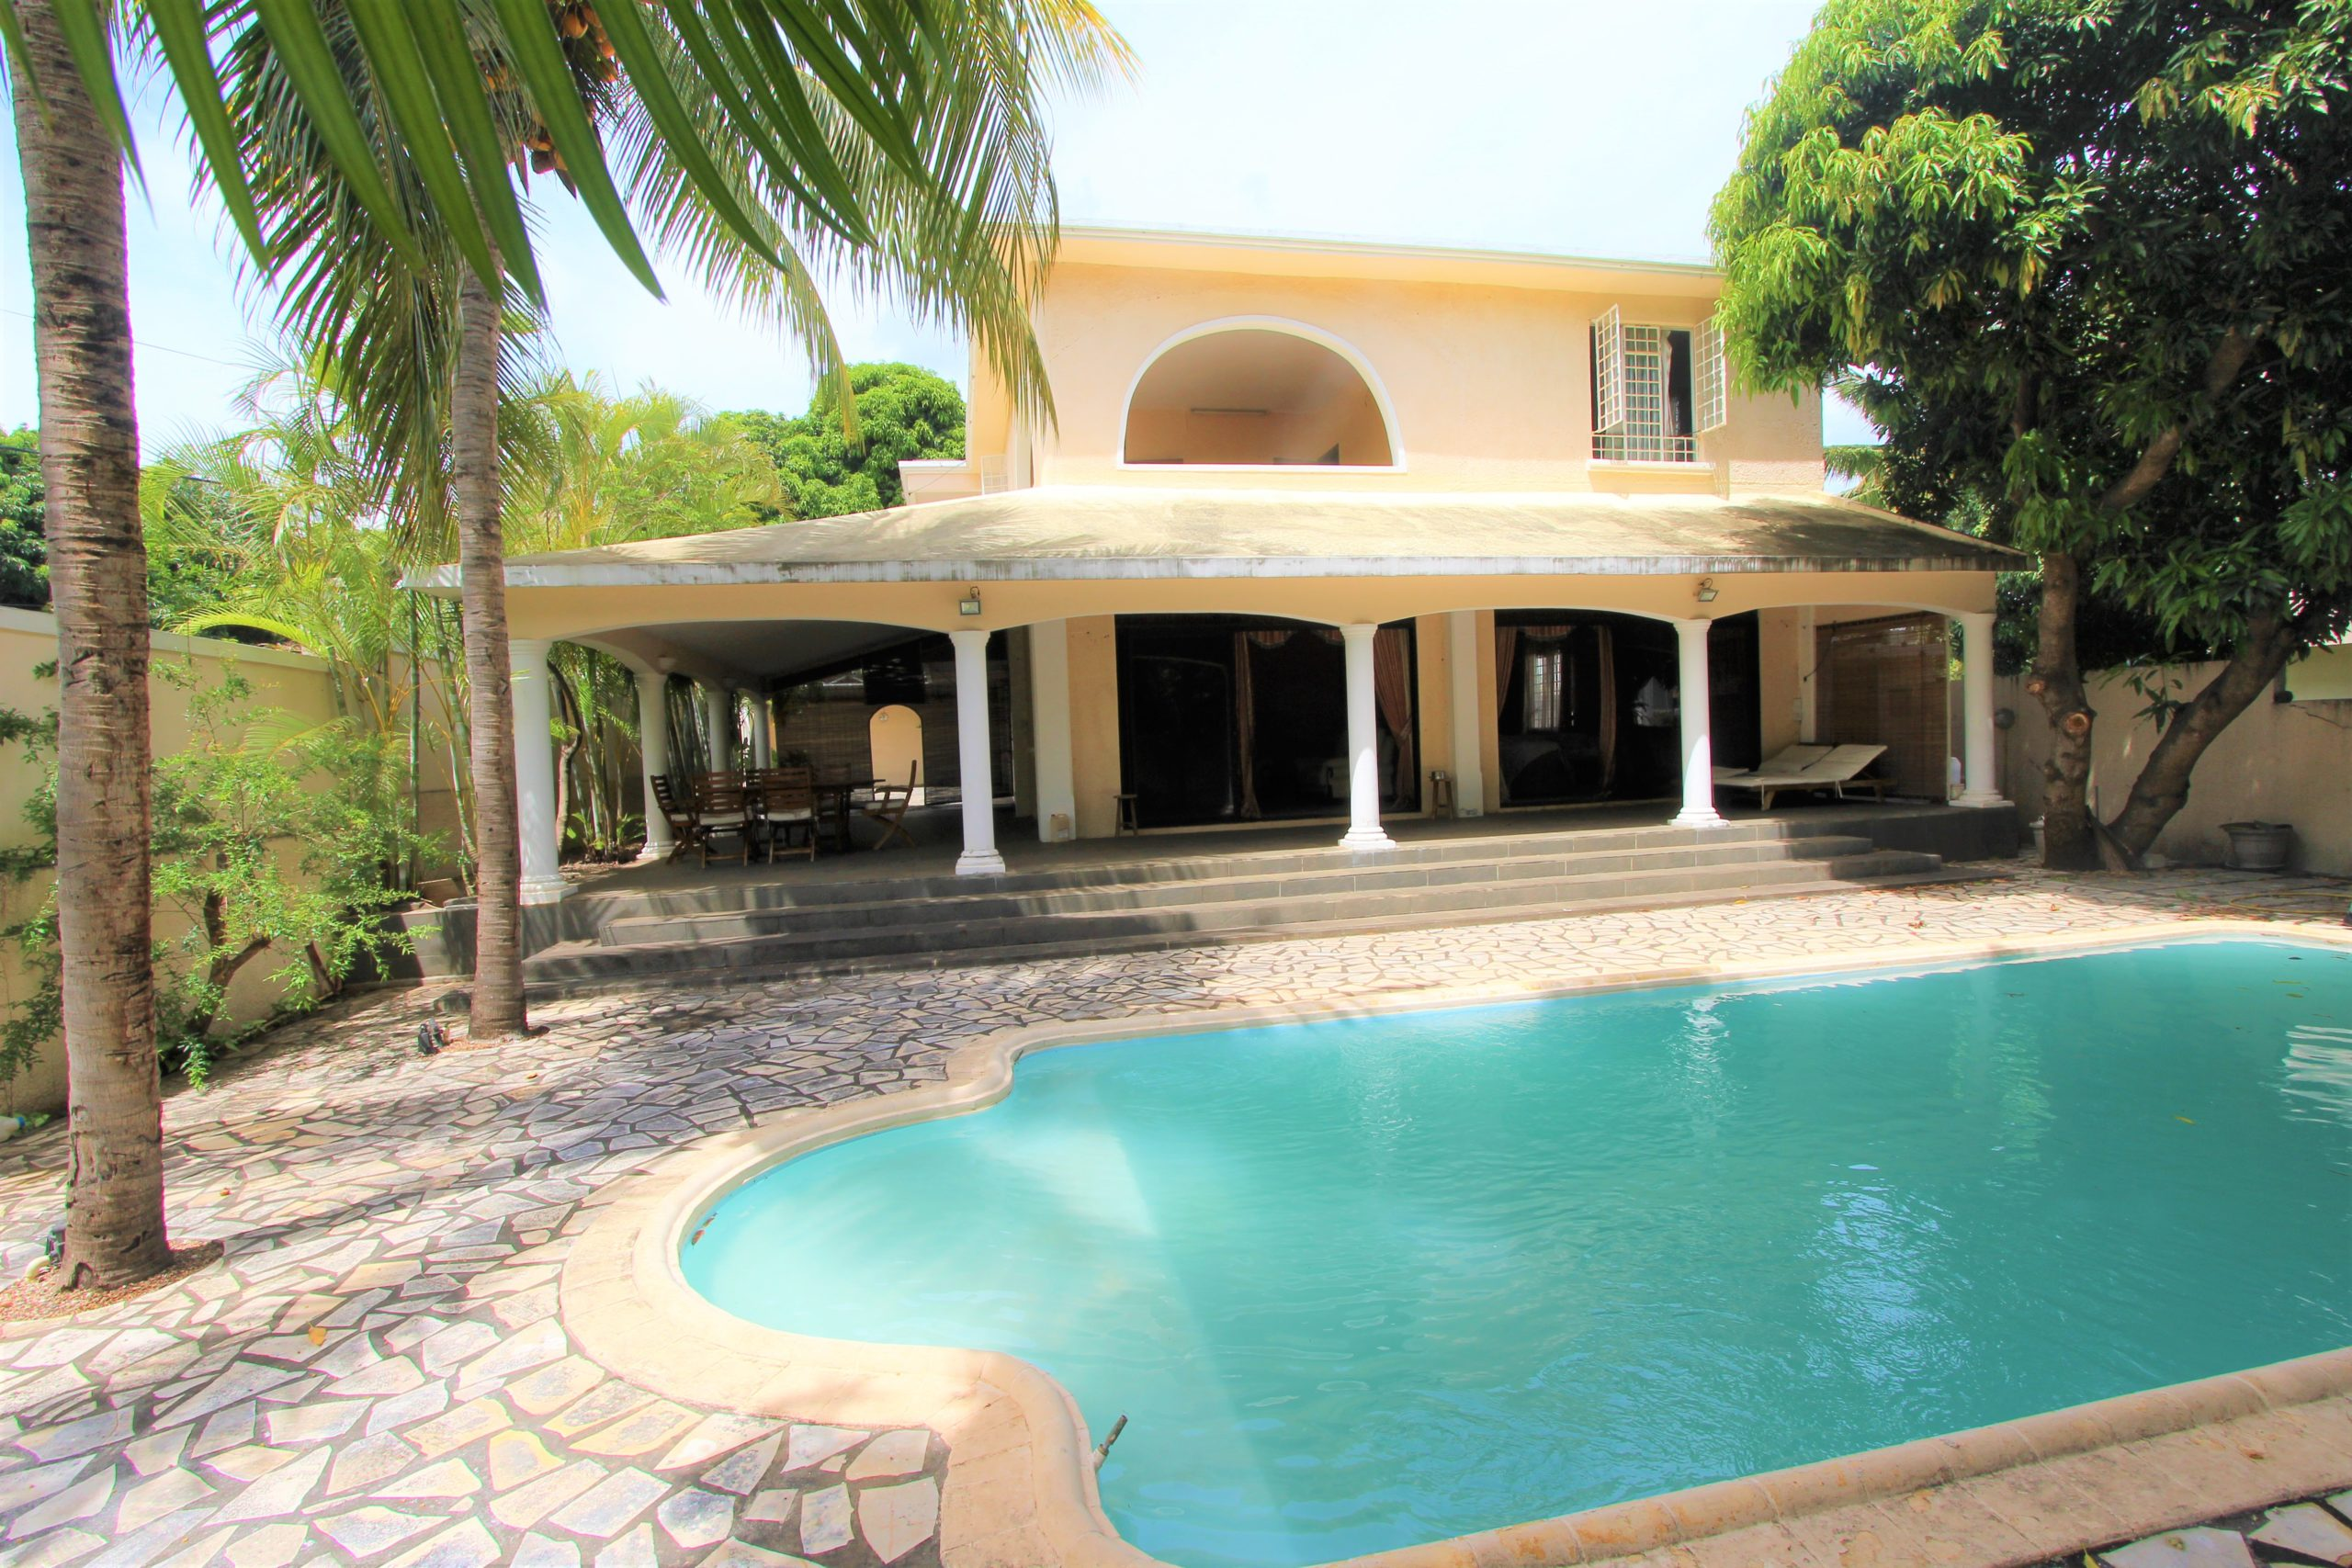 Charming house with swimming pool in Coromandel